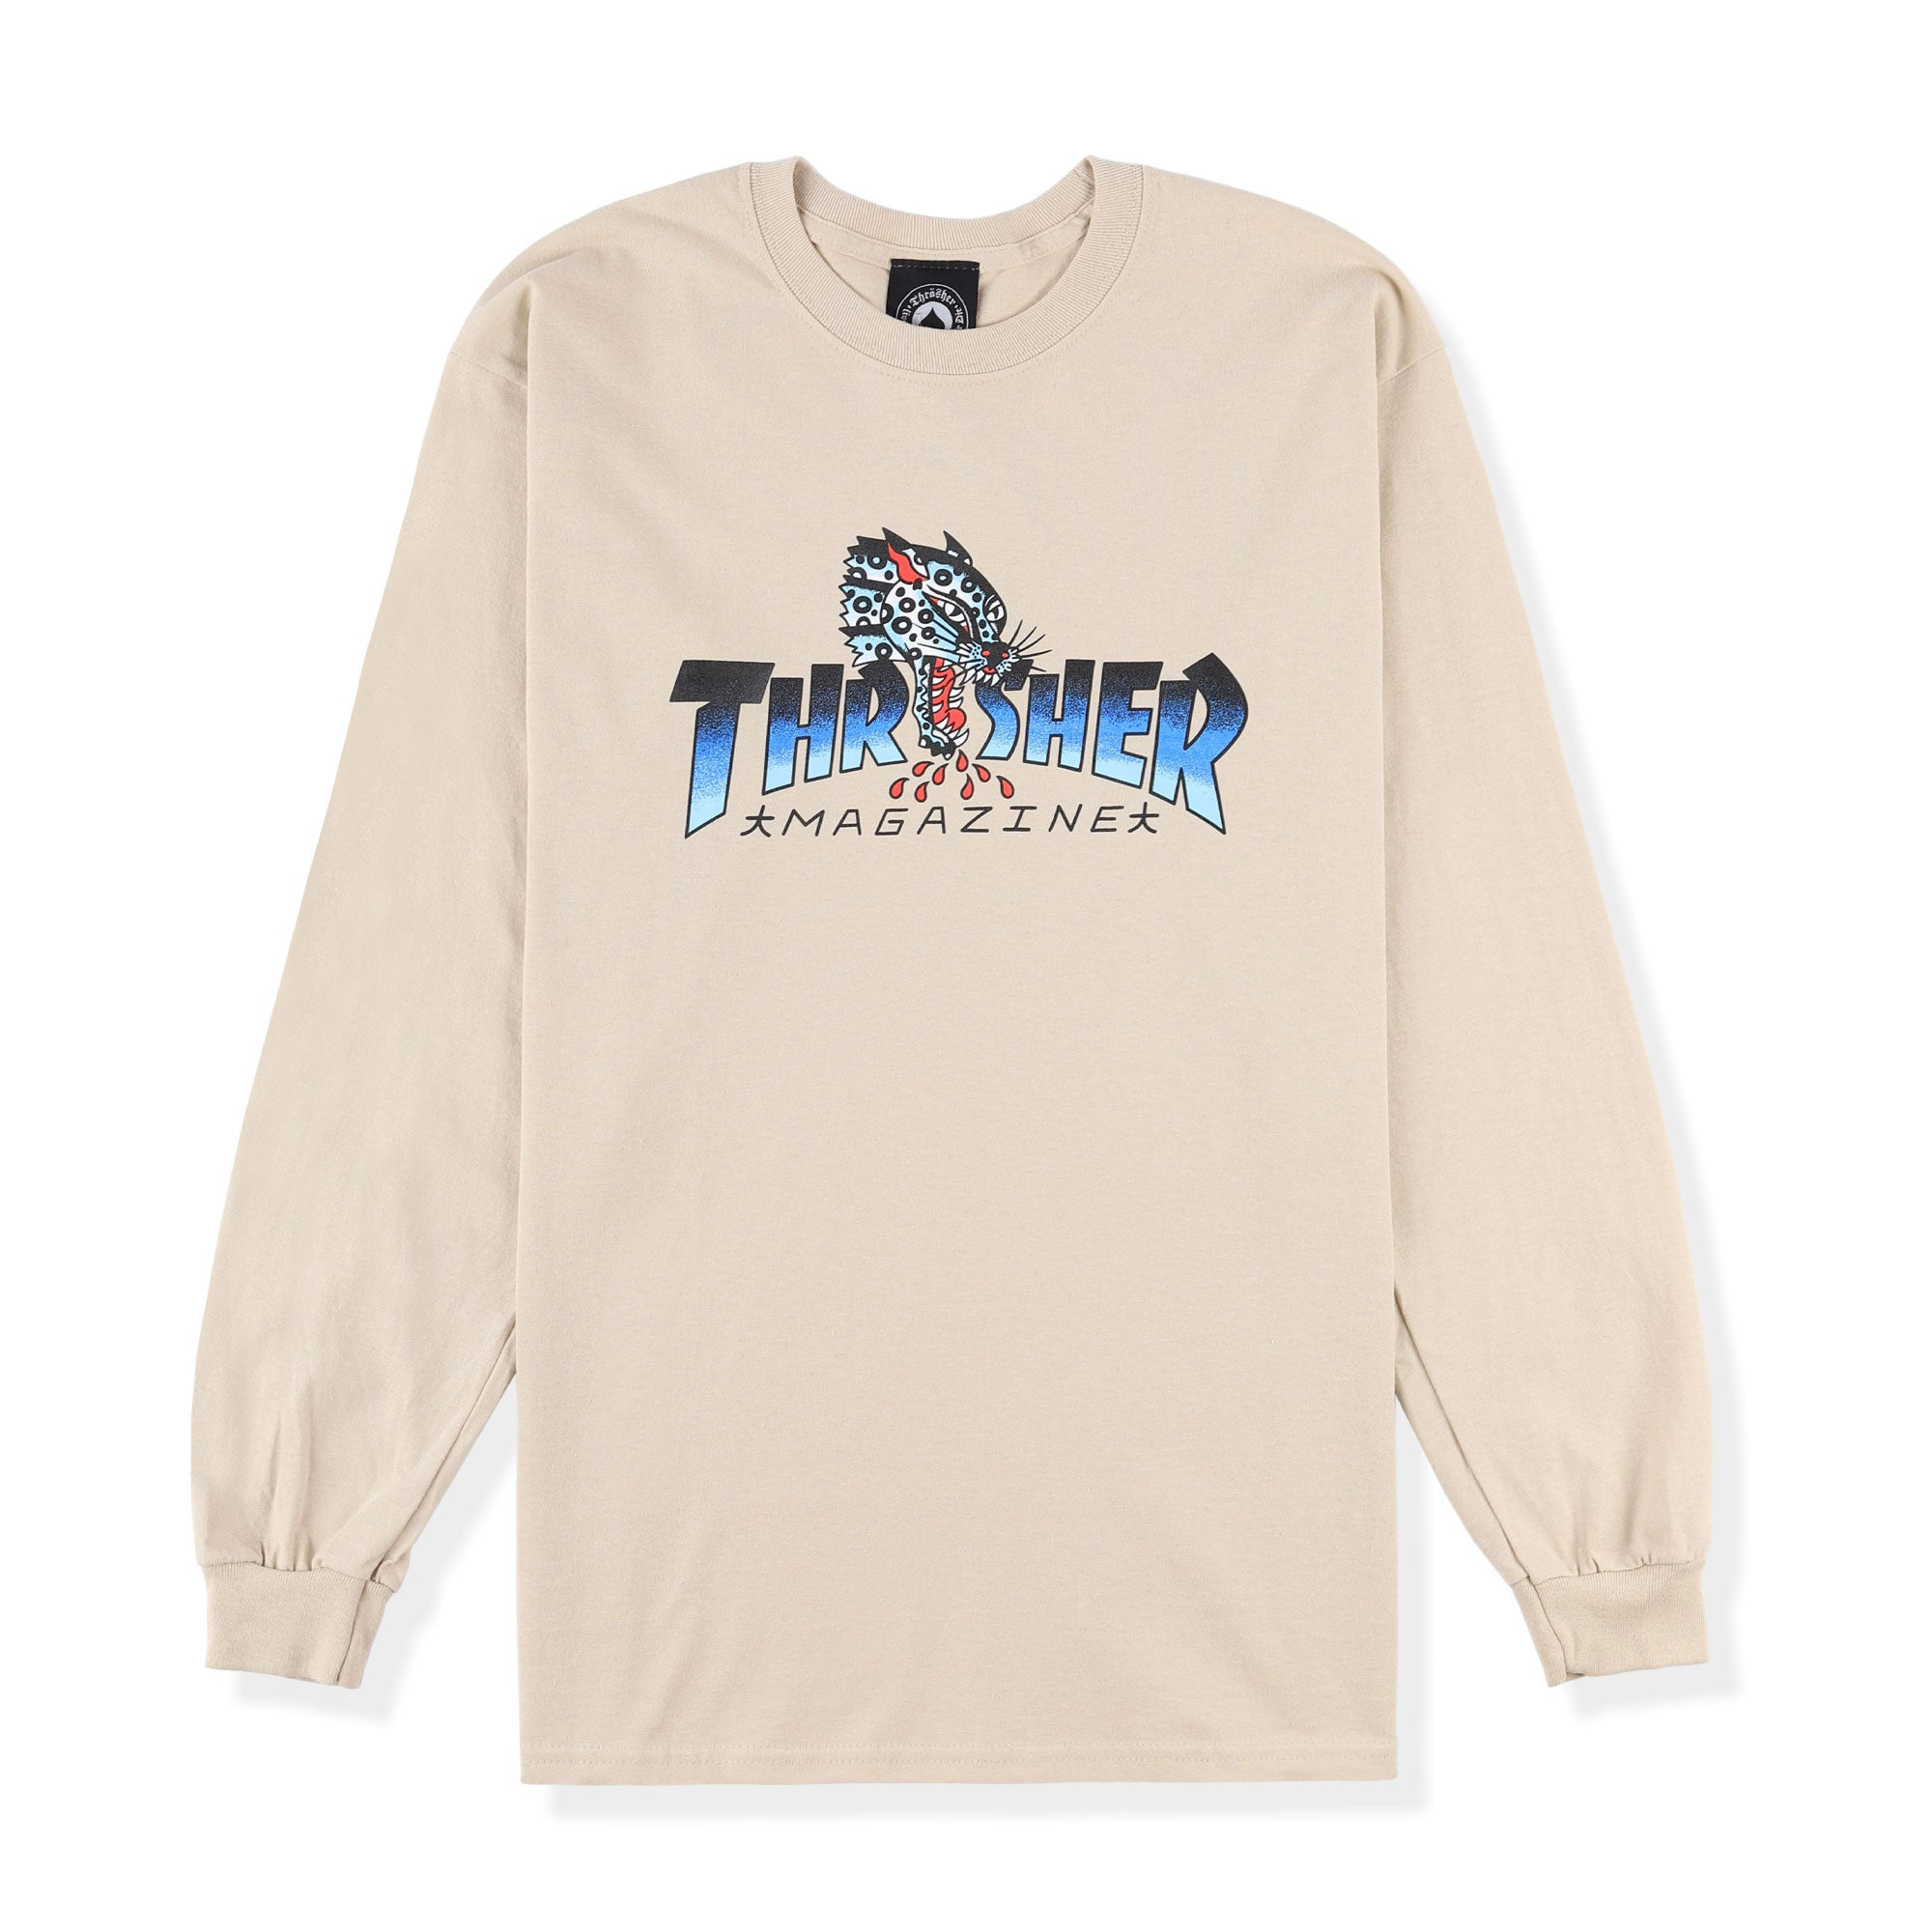 Thrasher Leopard Mag Longsleeve Tee Product Photo #1